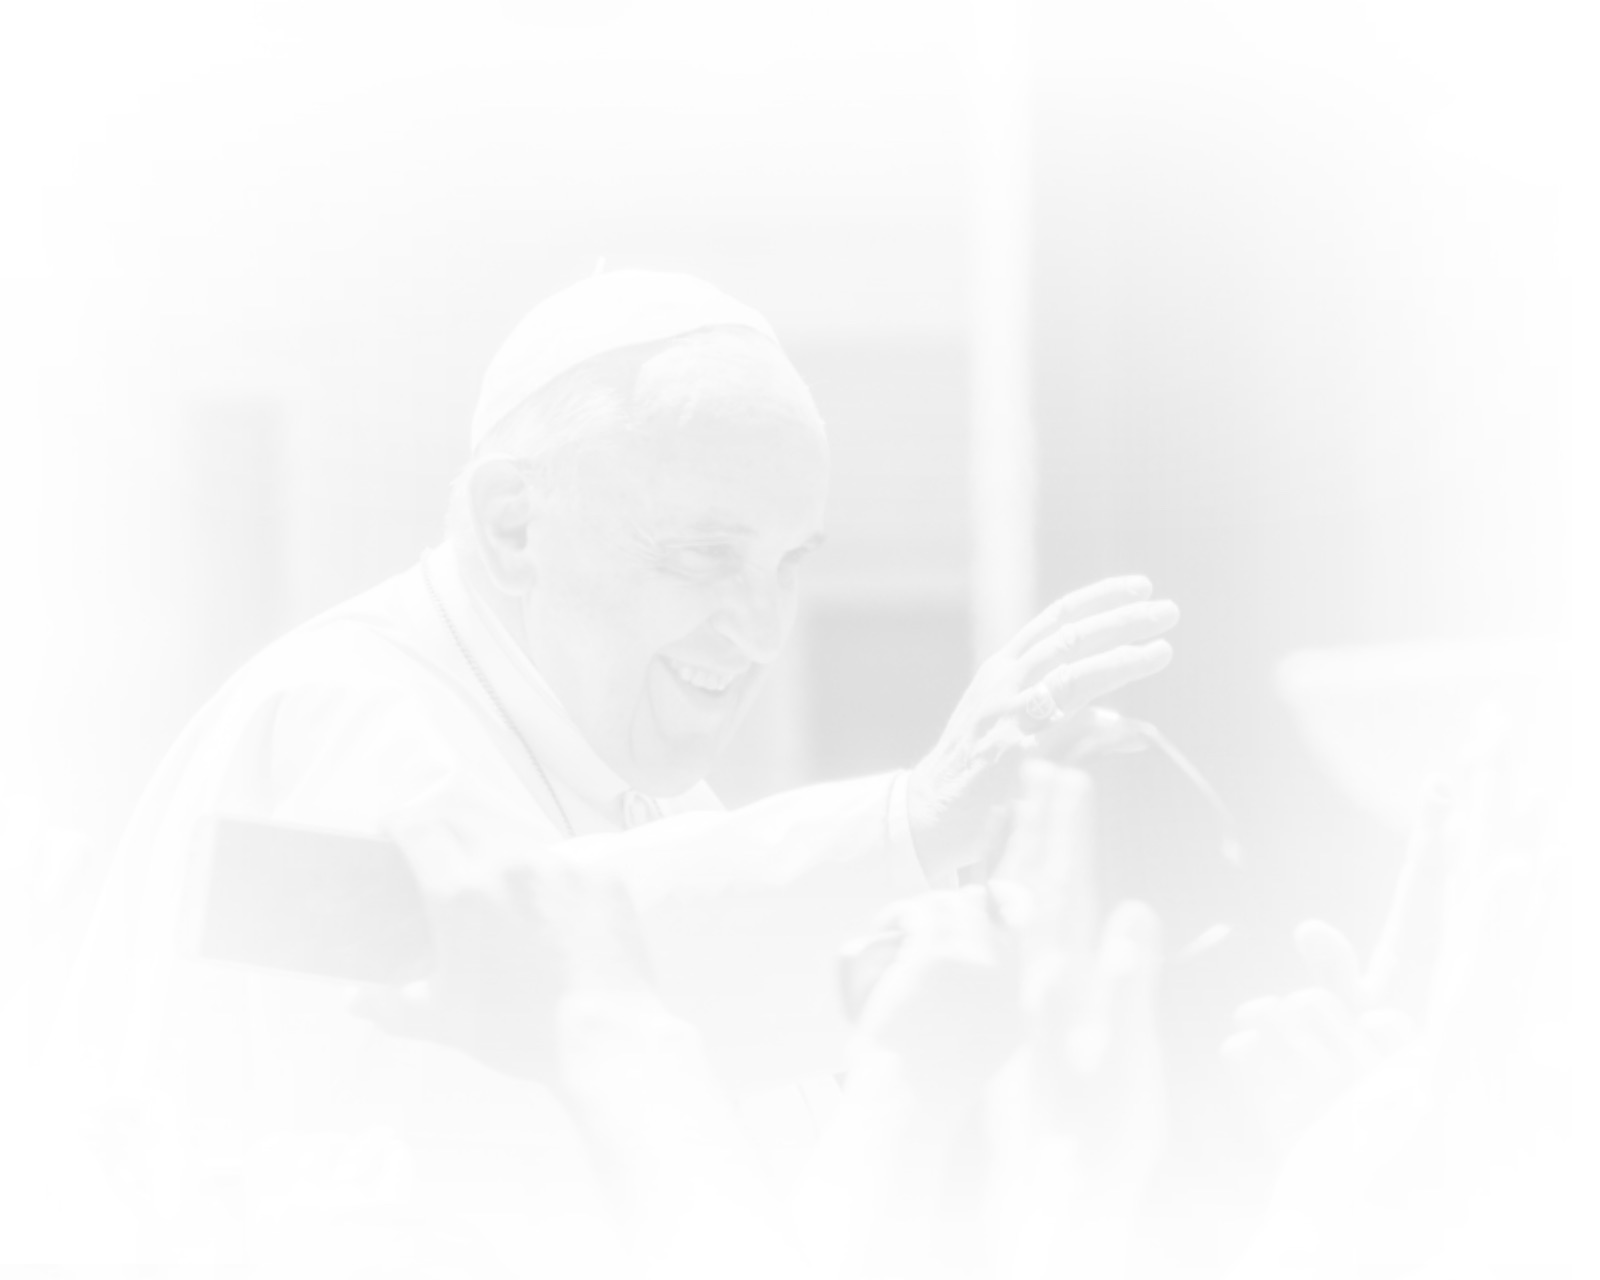 pope francis video - Migrants and Refugees